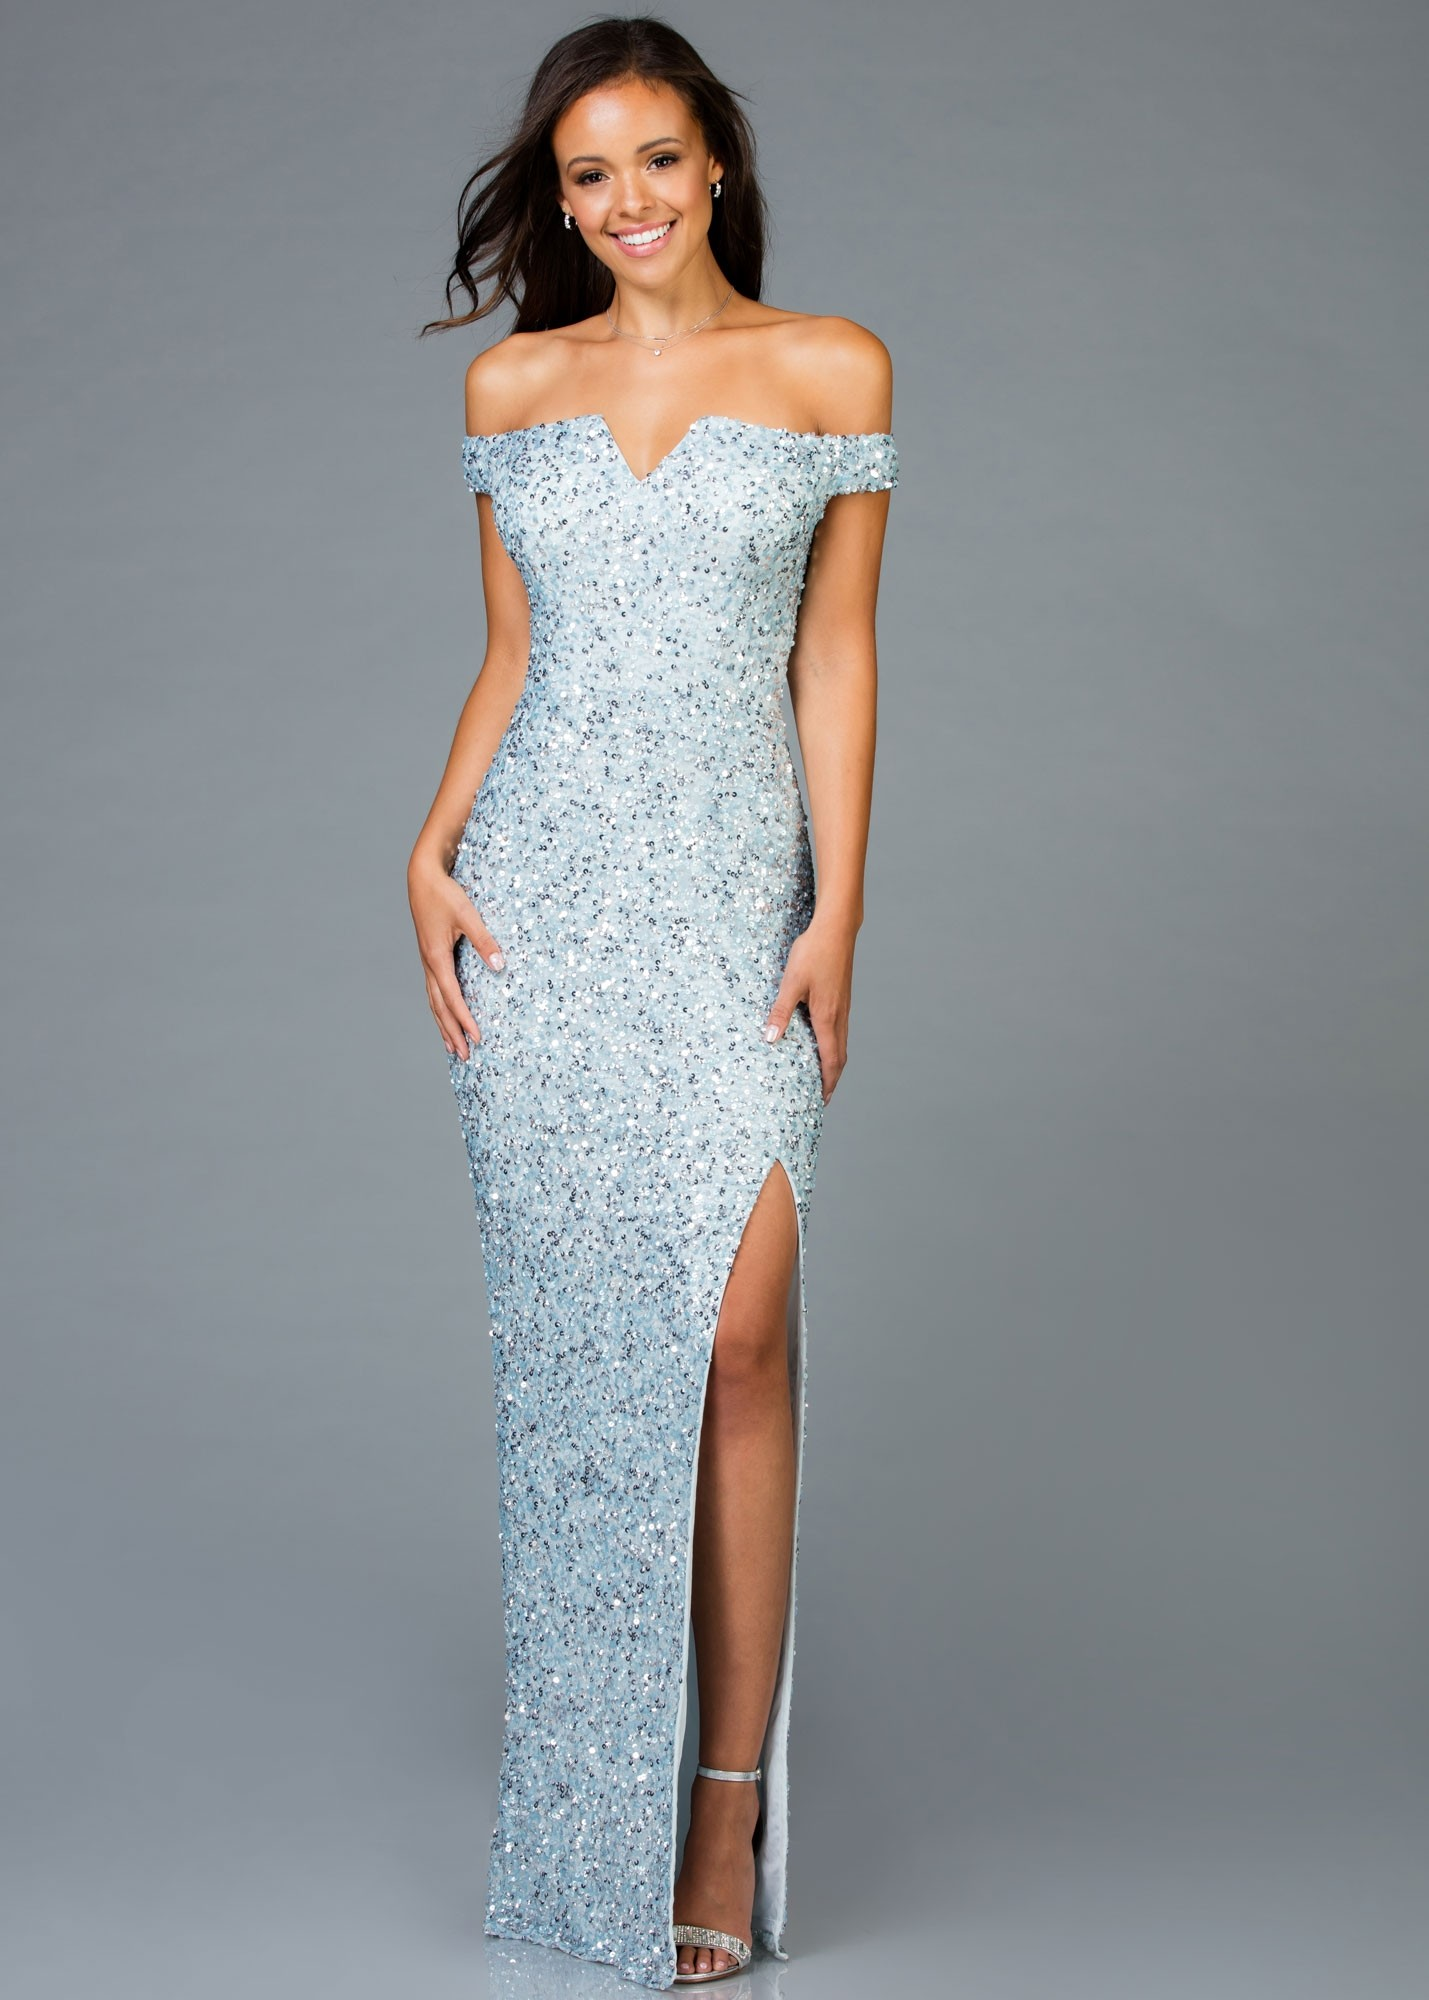 cd02490c98 Scala 48985 Sequin Beaded Off the Shoulder Gown | RissyRoos.com